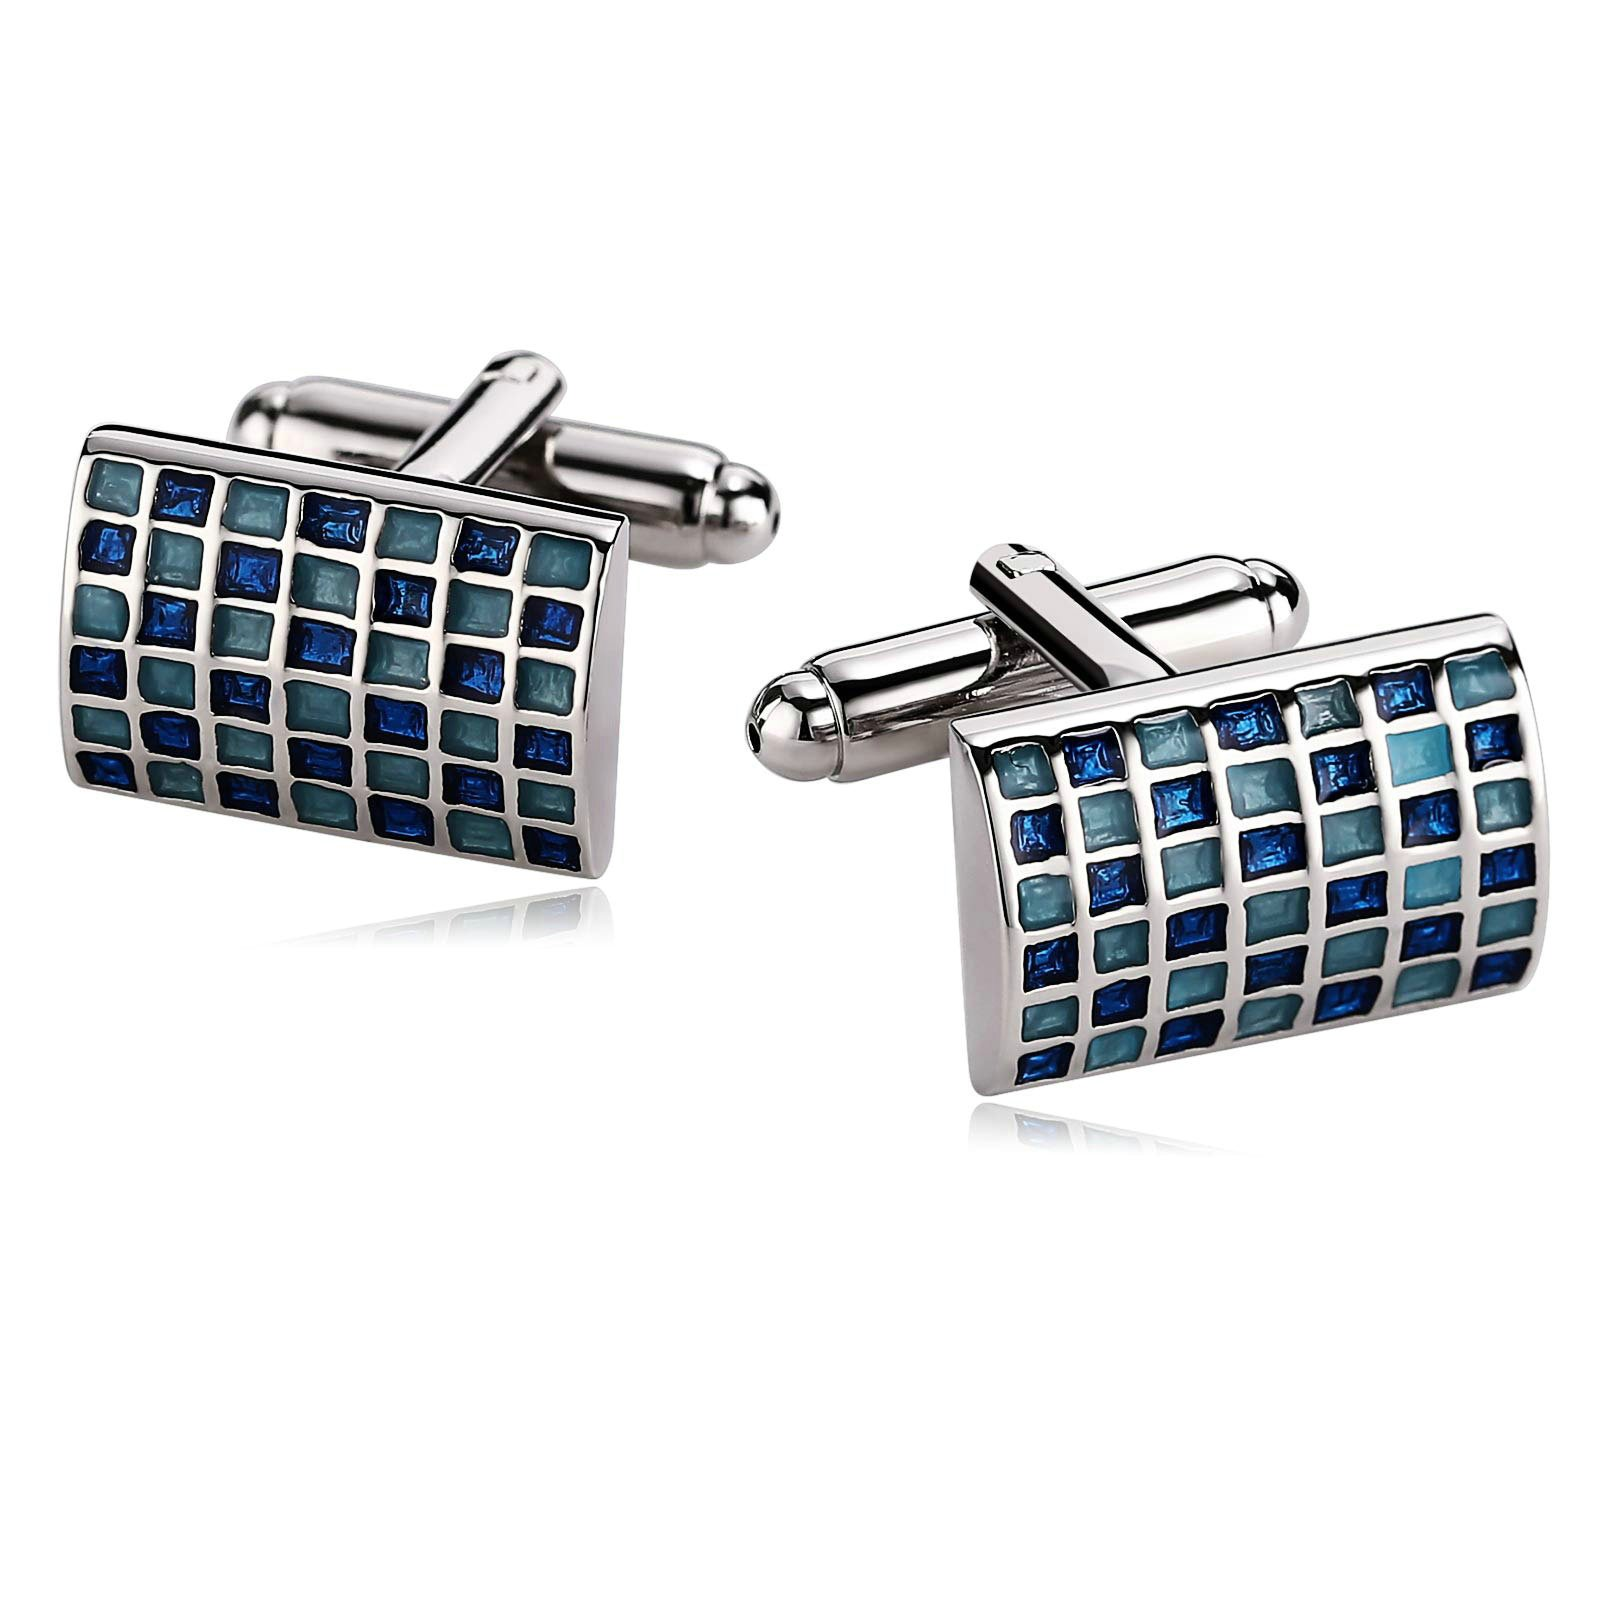 Gnzoe Stainless Steel Men's Shirt Cuff Links Business Wedding Grid 2-Color Construction Blue by Gnzoe (Image #1)